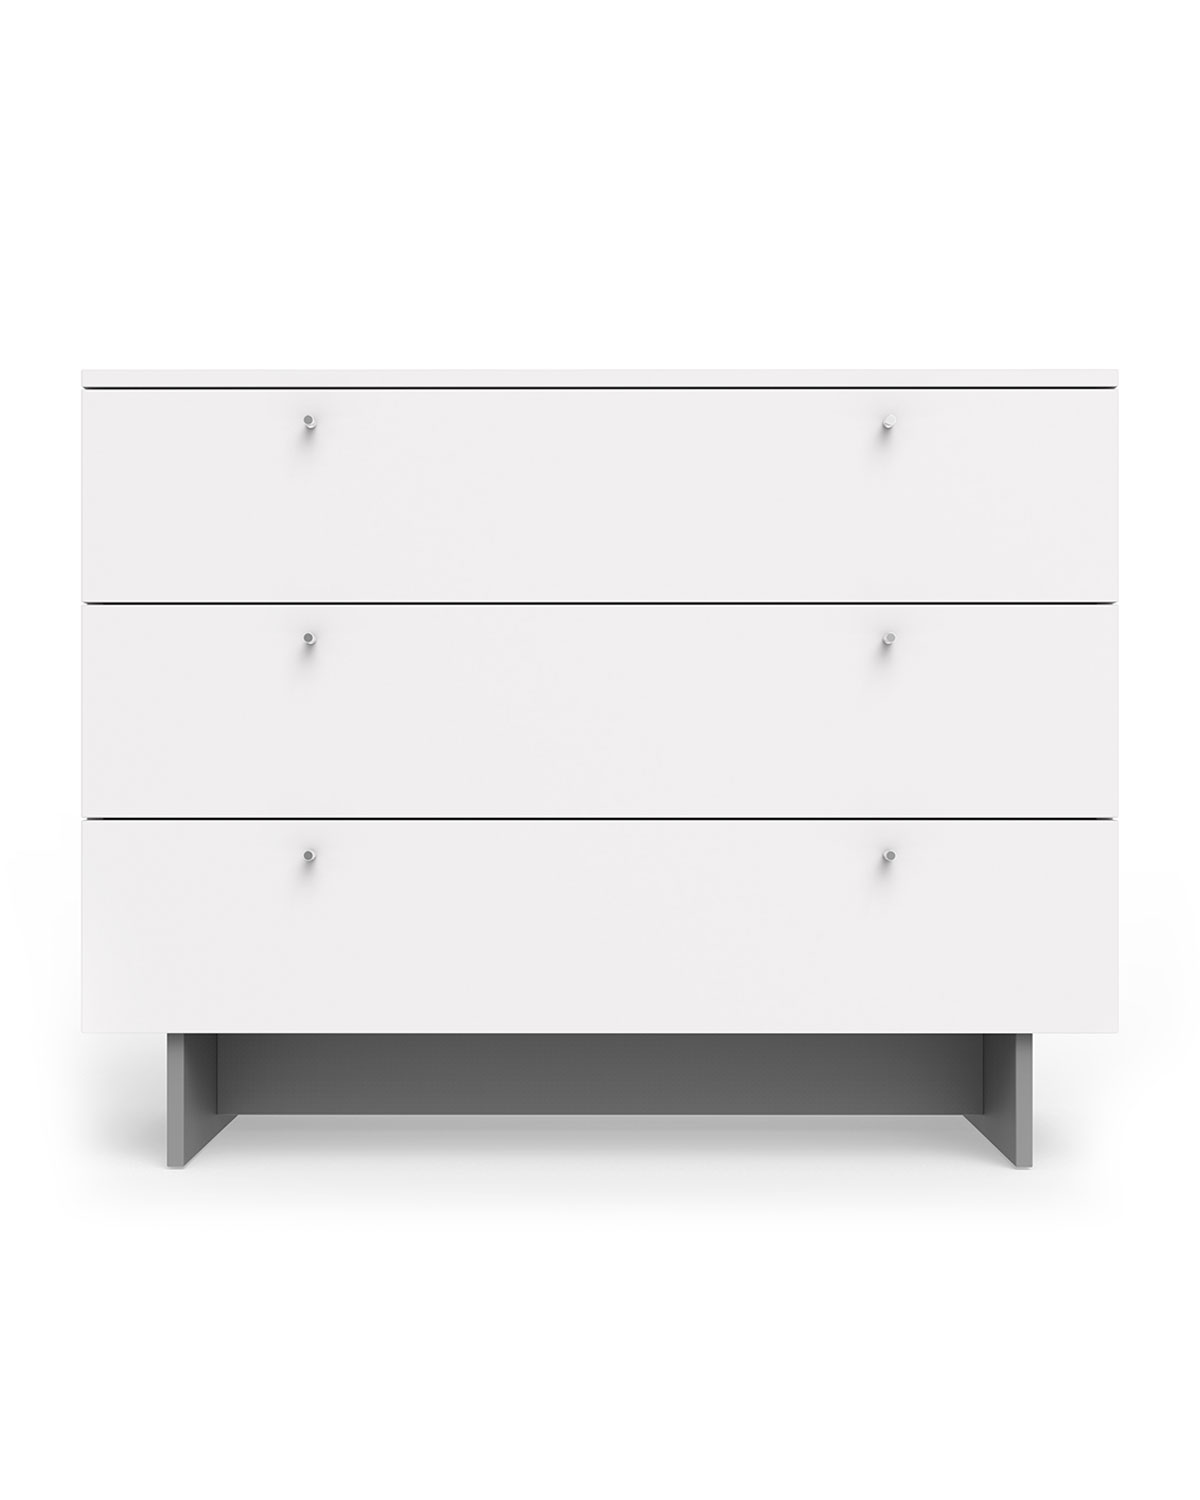 "Spot On Square Roh 45"" Dresser, White"